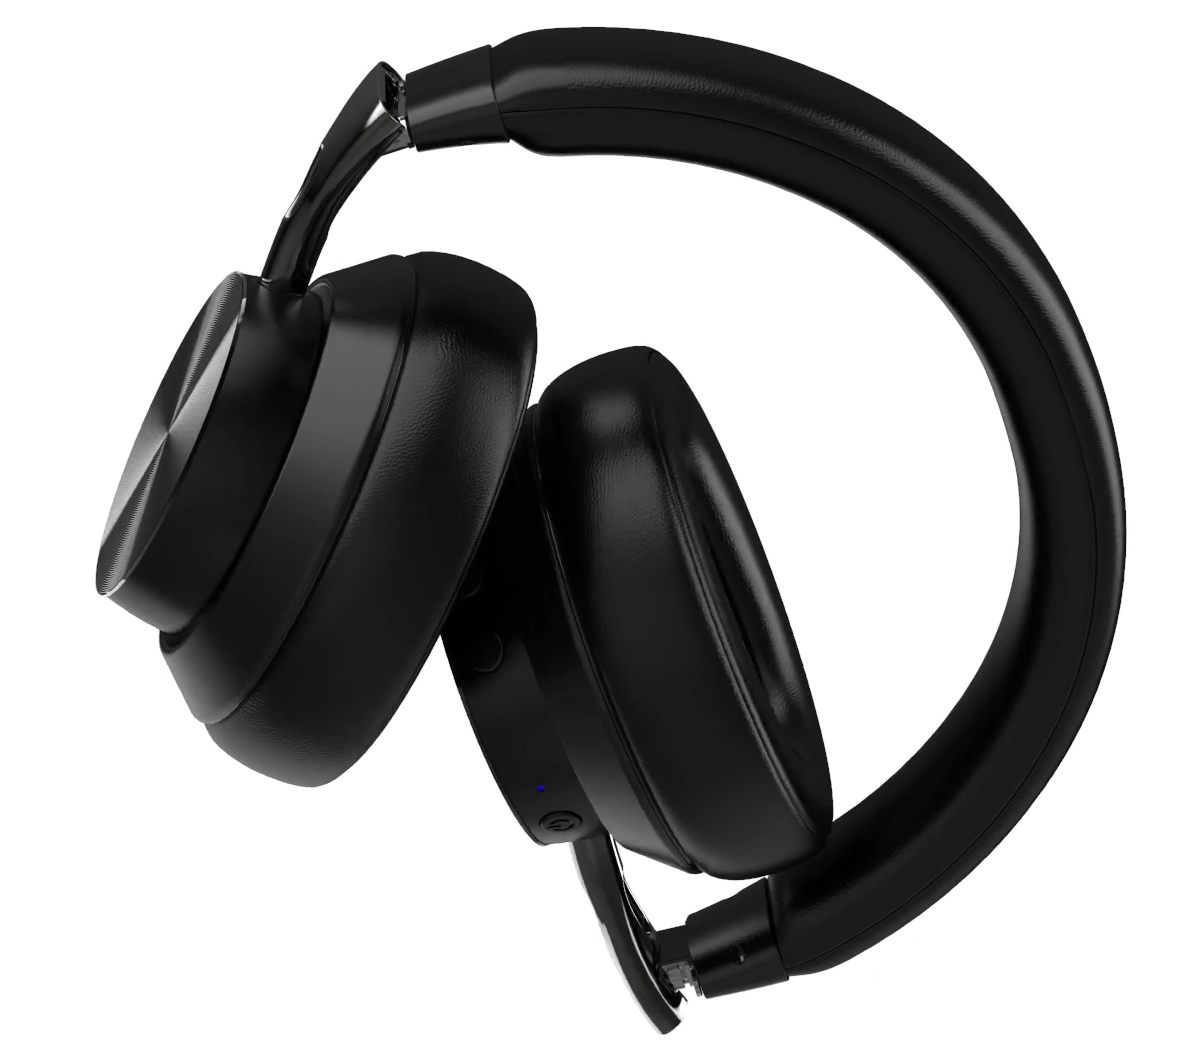 Mixcder E10 Headphones - 90 Degrees Swivels